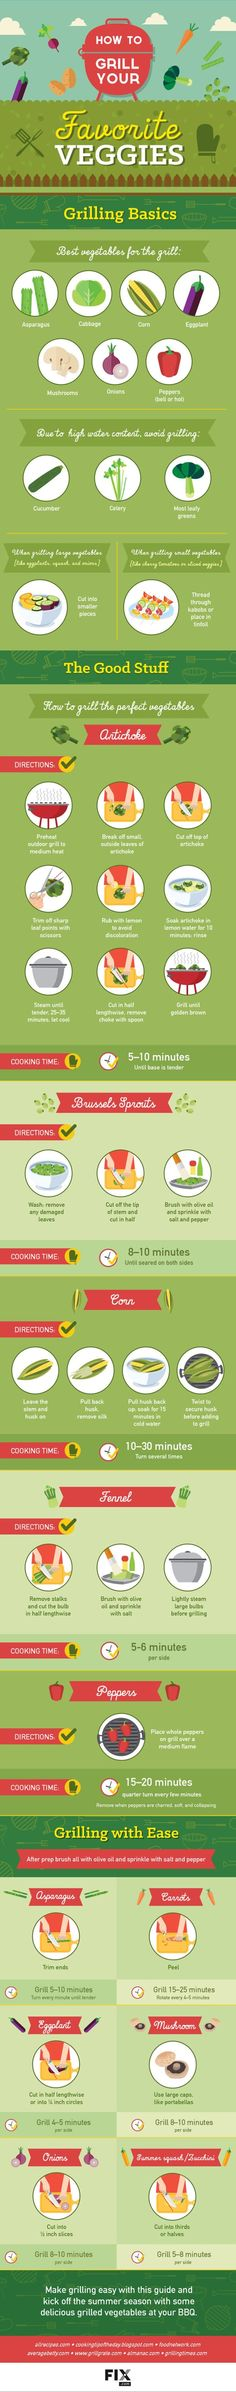 How to Grill Perfect Veggies Infographic on Plating Pixels. Learn how to grill artichoke, Brussels sprouts, corn, fennel, bell peppers, asparagus, carrot, eggplant, mushroom, onion, squash, and zucchini. Cooking tips how to grill vegetables - www.platingpixels.com